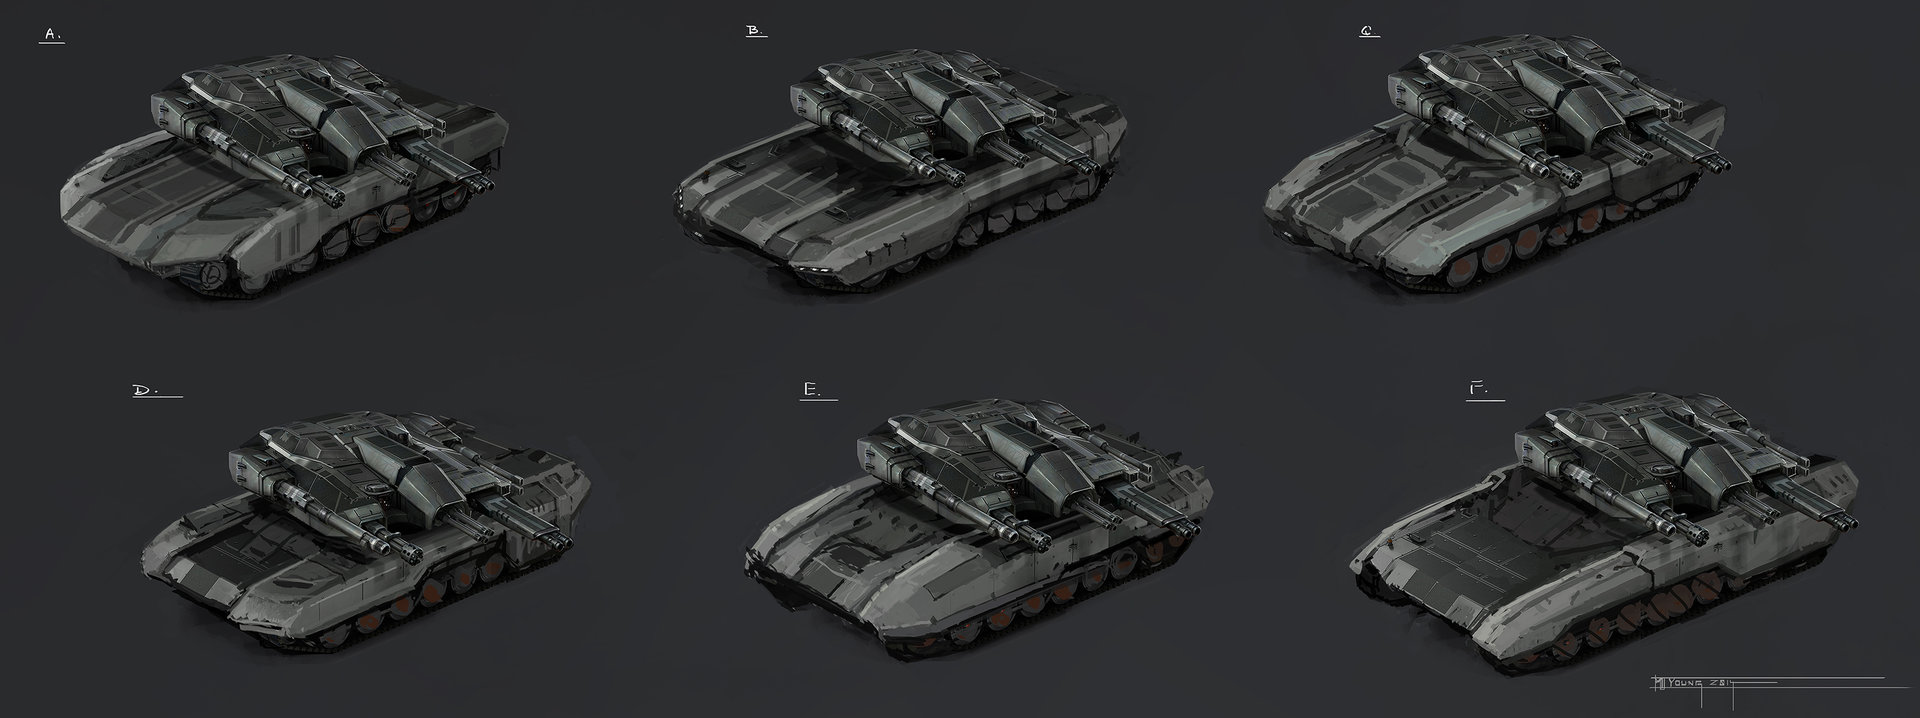 Muyoung kim armor leopard concept r2 chassis sketches